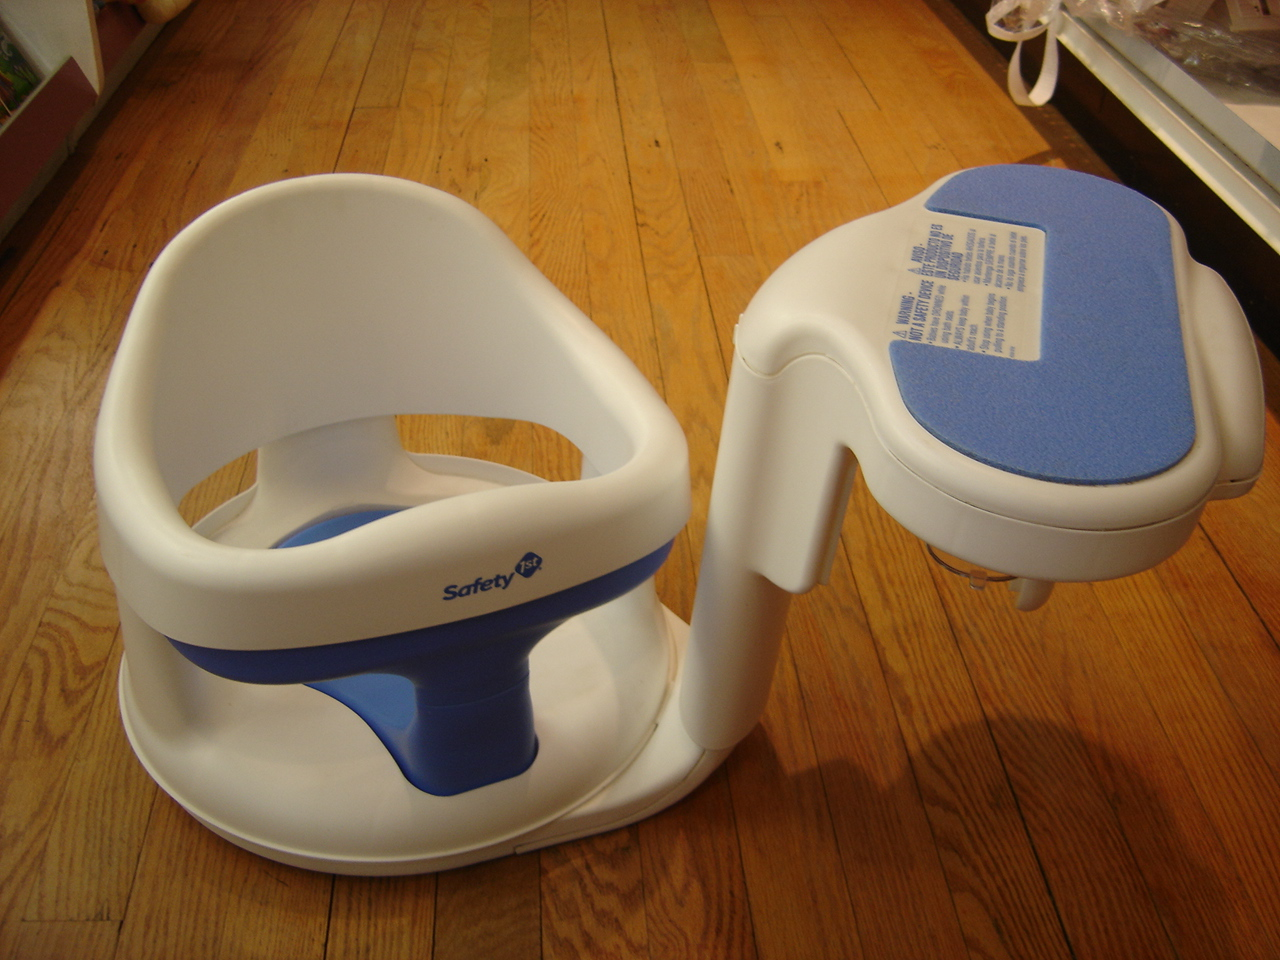 Baby Bath Tub Ring Seat Walmart. bebelove baby bath ring seat in ...